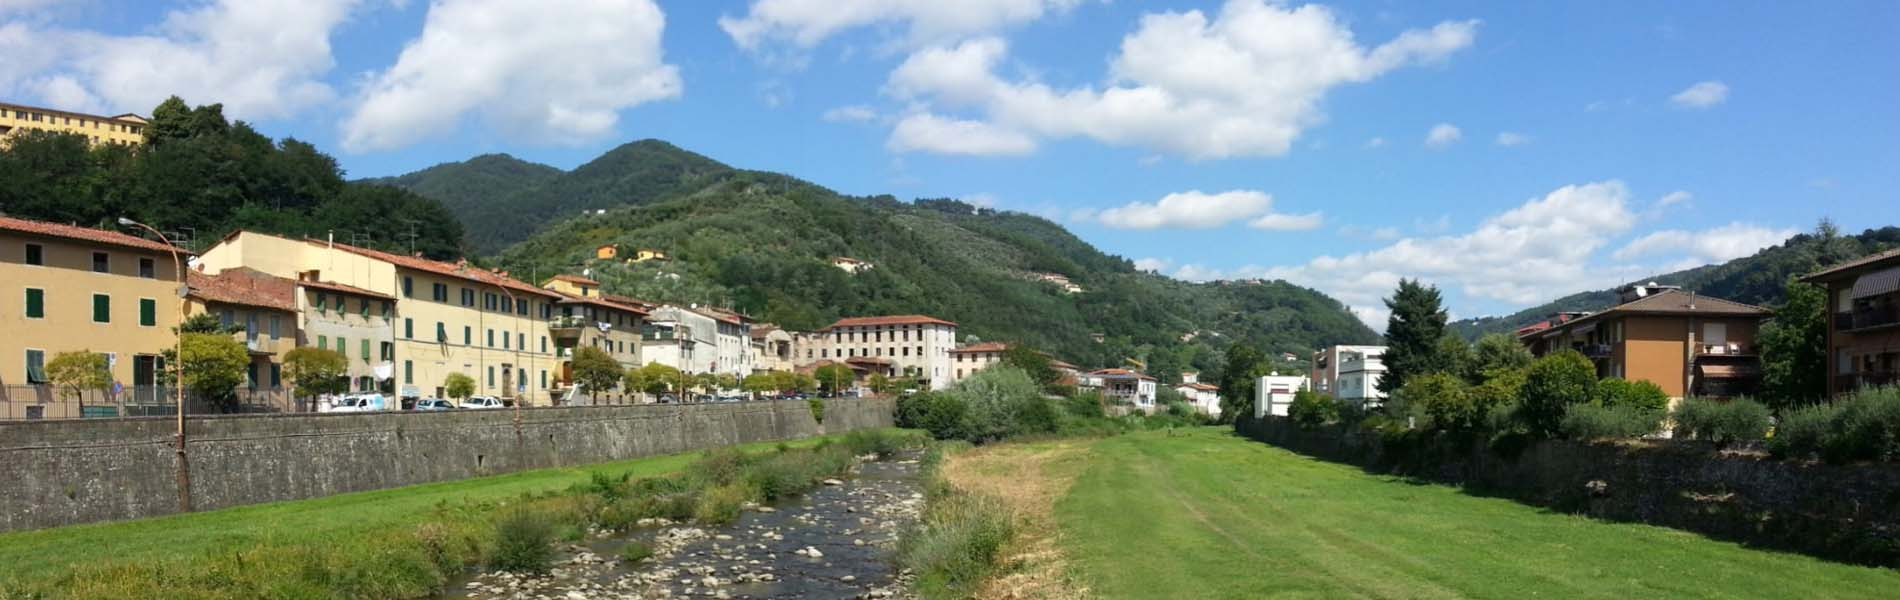 http://www.iltuopaese.com/wp-content/themes/Directory/images/pescia-3.jpg